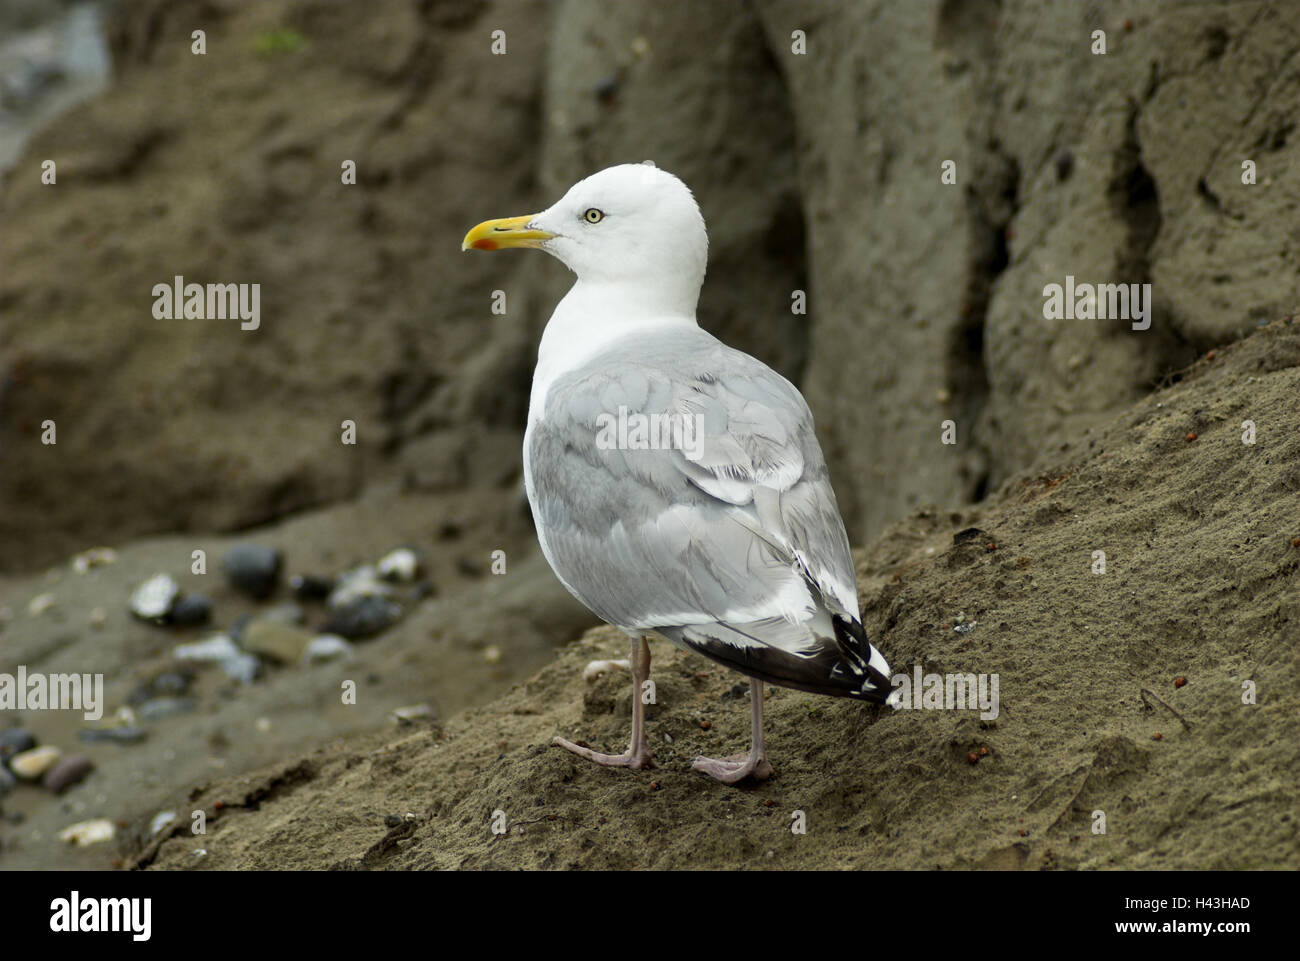 Silver gull, Larus argentatus, bird, bird's kind, the Baltic Sea, Germany, Darss, Ahrenshoop, Laridae, animal, - Stock Image